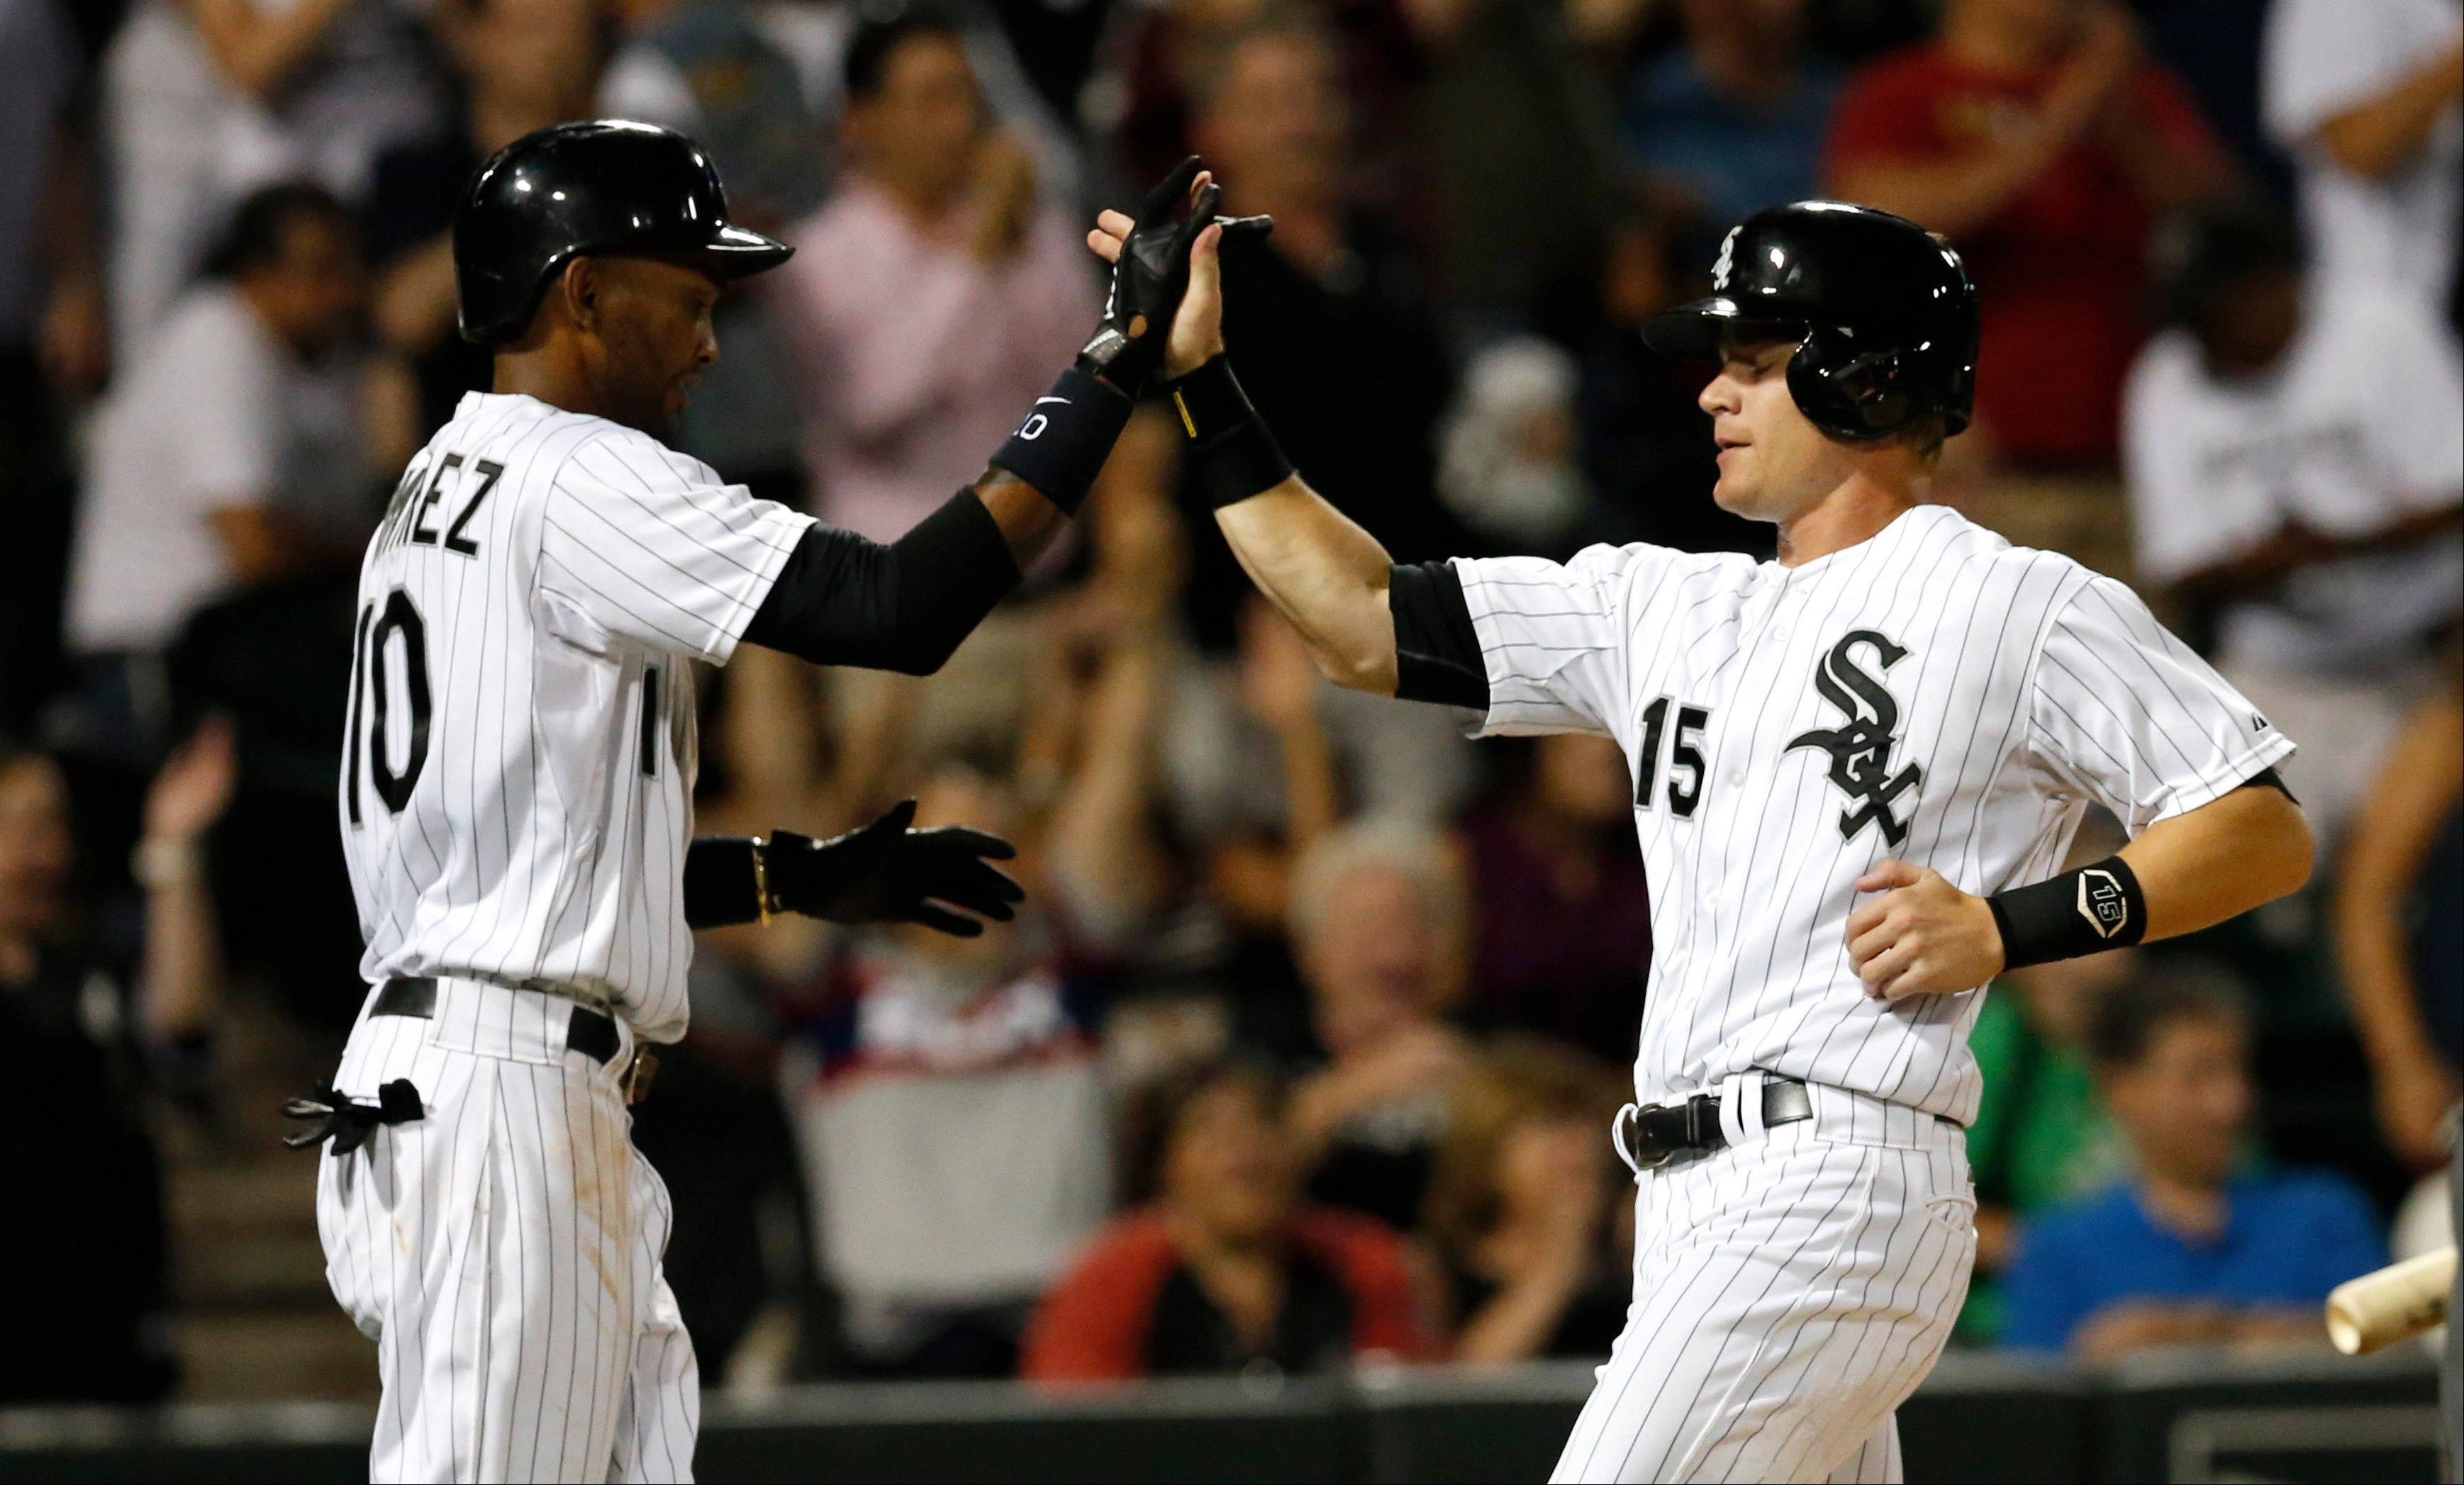 Huge game by confident Danks lifts Sox